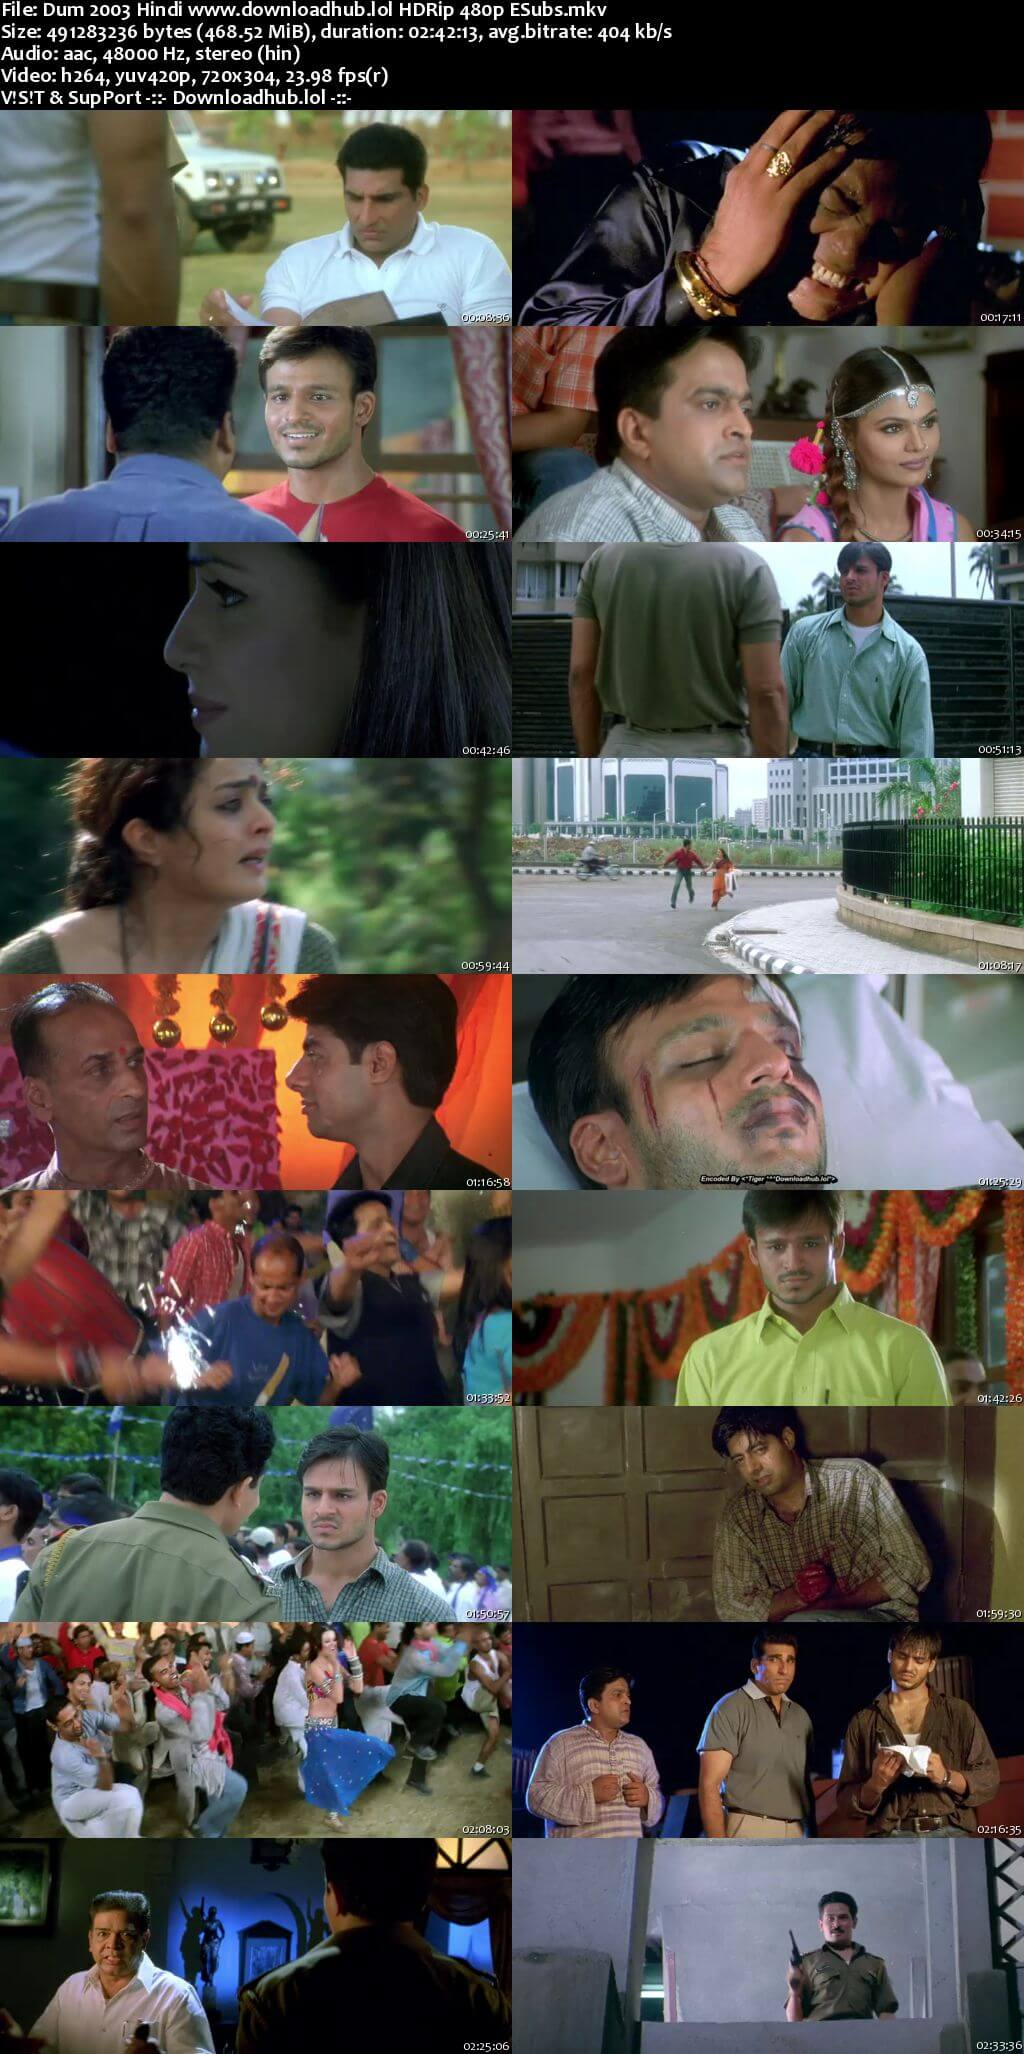 Dum 2003 Hindi 450MB HDRip 480p ESubs